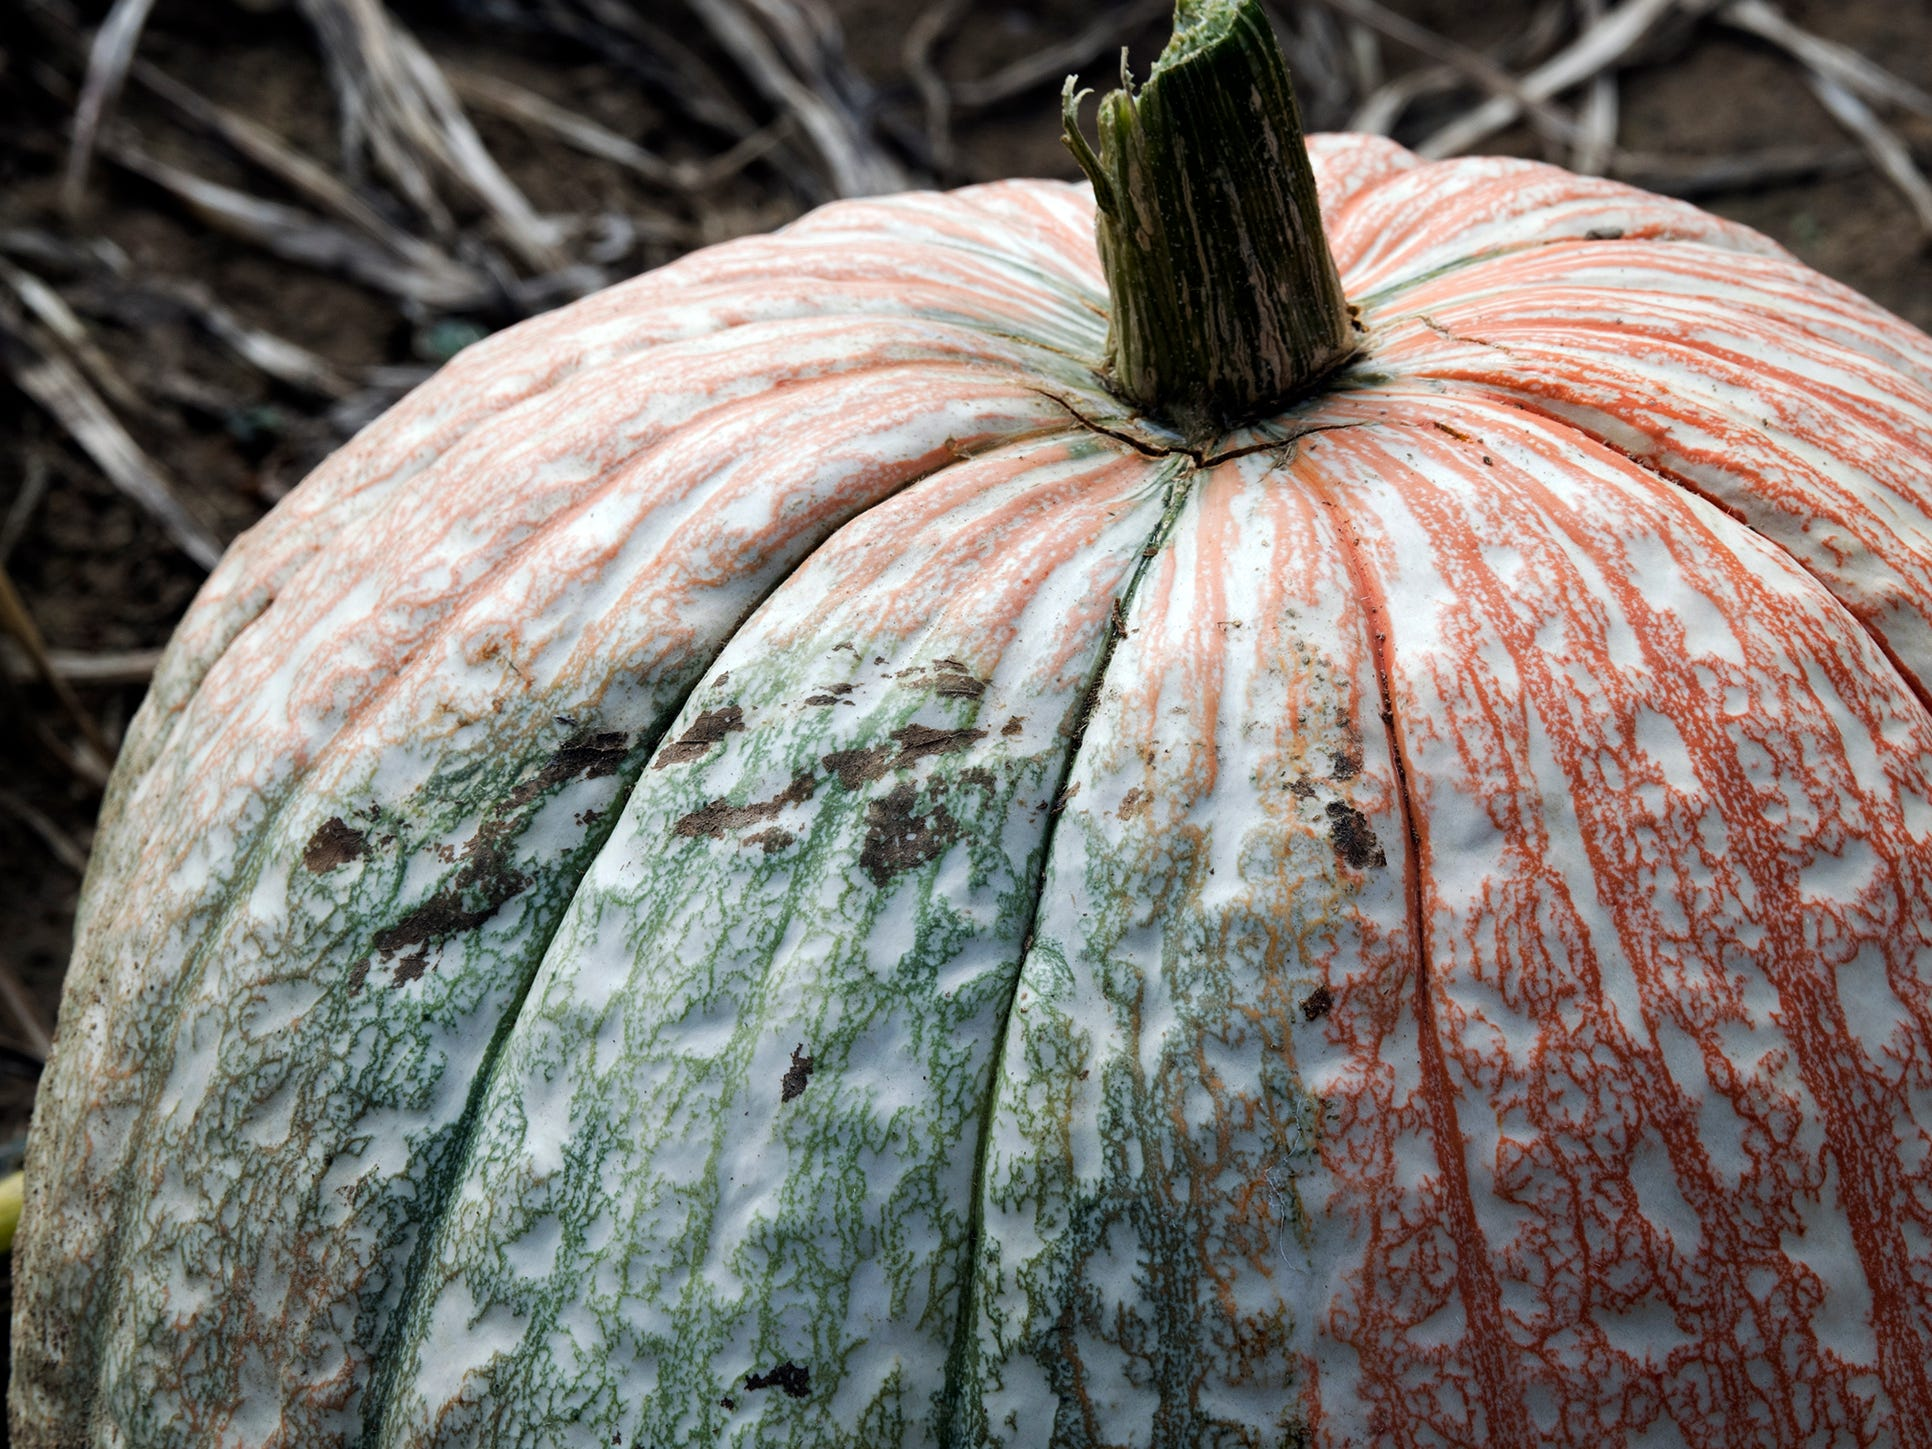 A pumpkin in the U-Pick field at Paulus Orchards in Monaghan Township Sunday September 30, 2018.